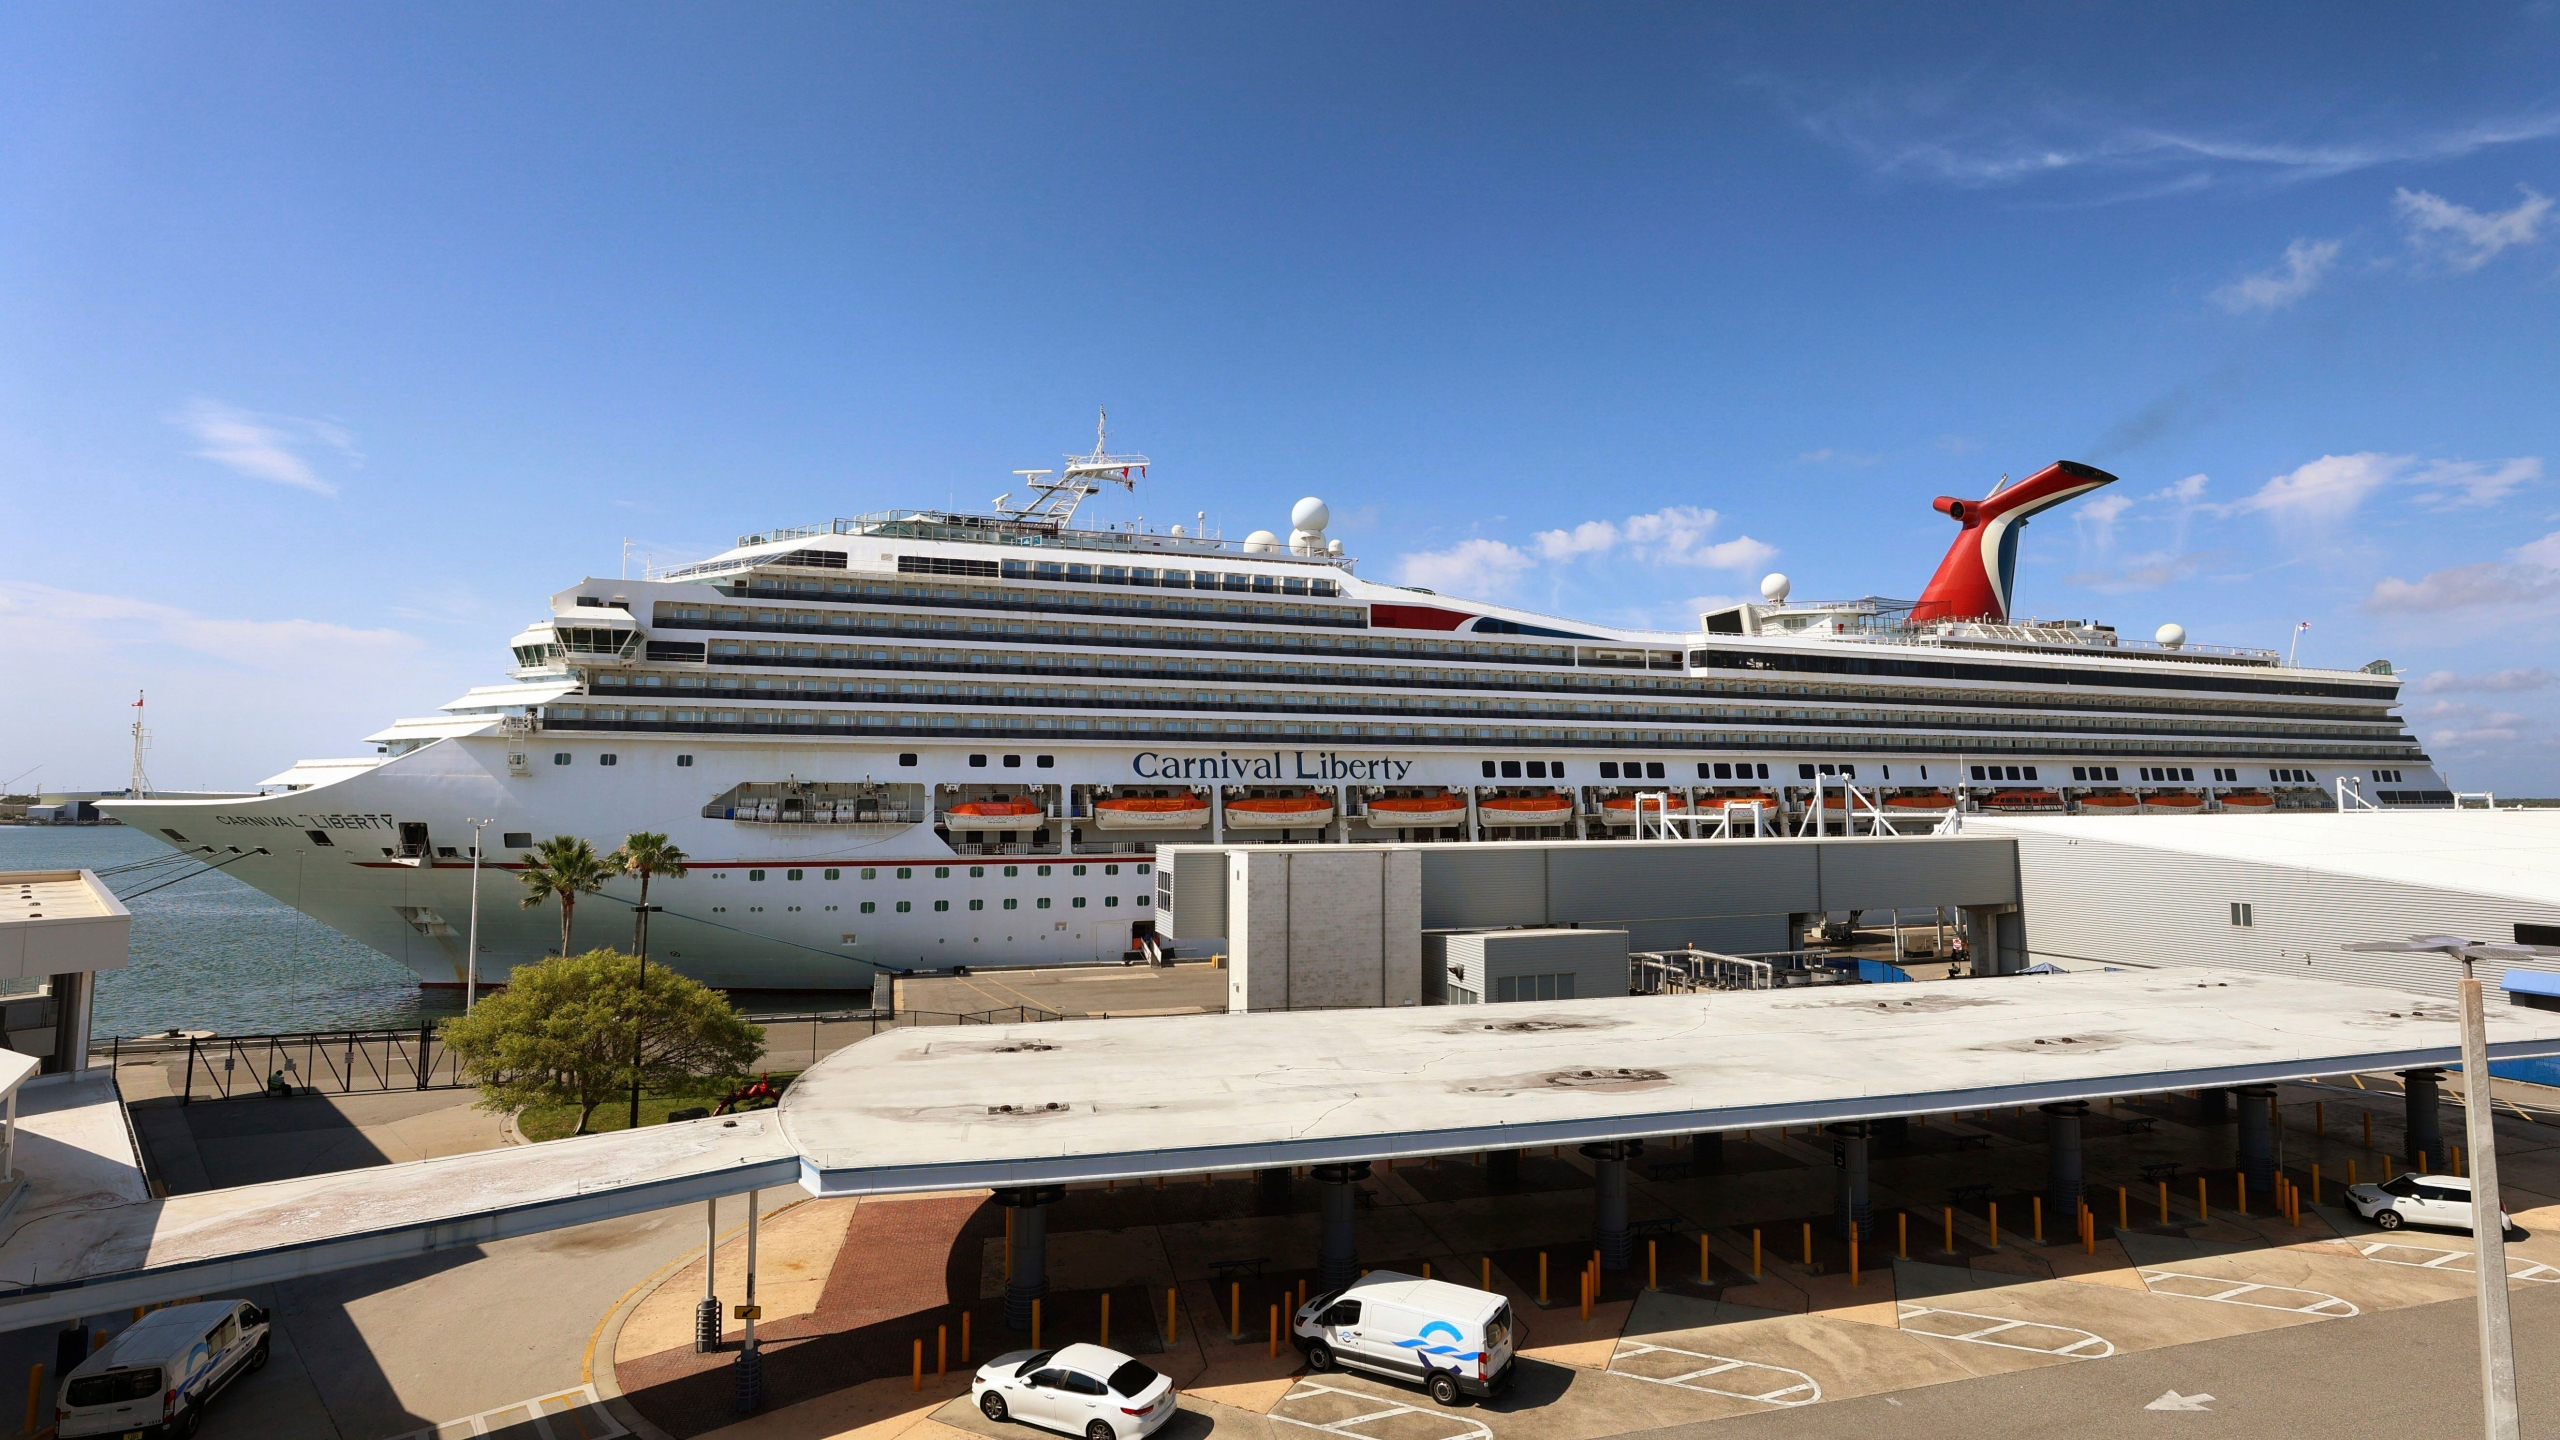 """In this Wednesday, May 12, 2021, file photo, the Carnival Cruise ship """"Liberty"""" is docked at Port Canaveral, Fla. Carnival Corp. continues to lose billions while it waits for cruising to recover from the pandemic. Carnival said Thursday, June 24, that it lost $2.1 billion in its latest quarter. (Joe Burbank/Orlando Sentinel via AP)"""